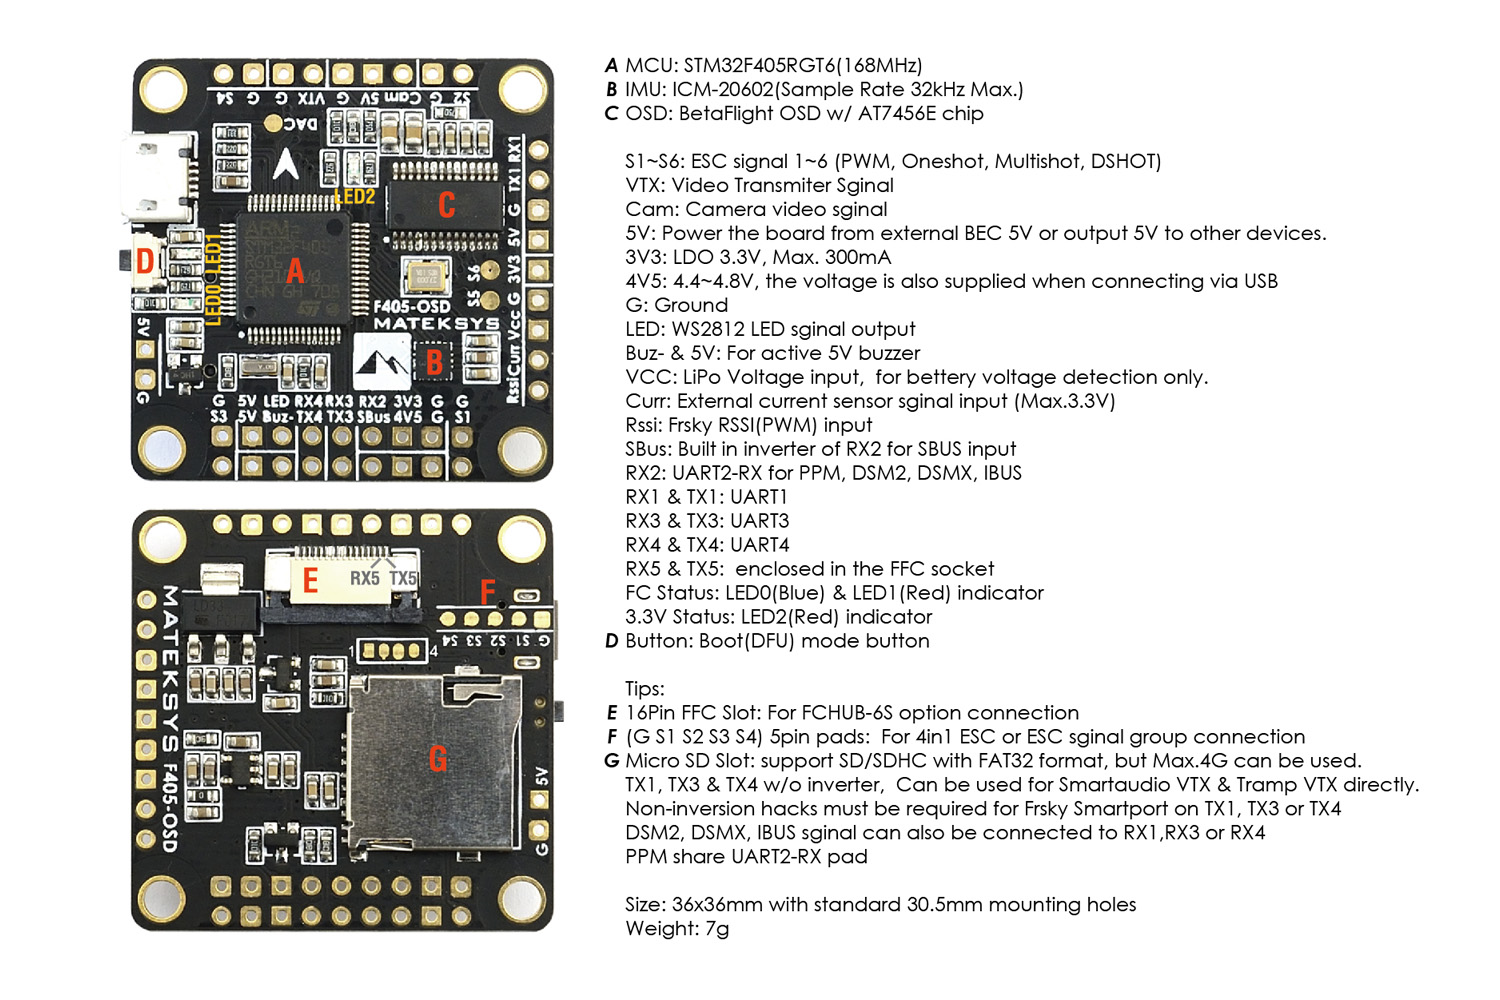 Matek F405 Osd New F4 Flight Controller